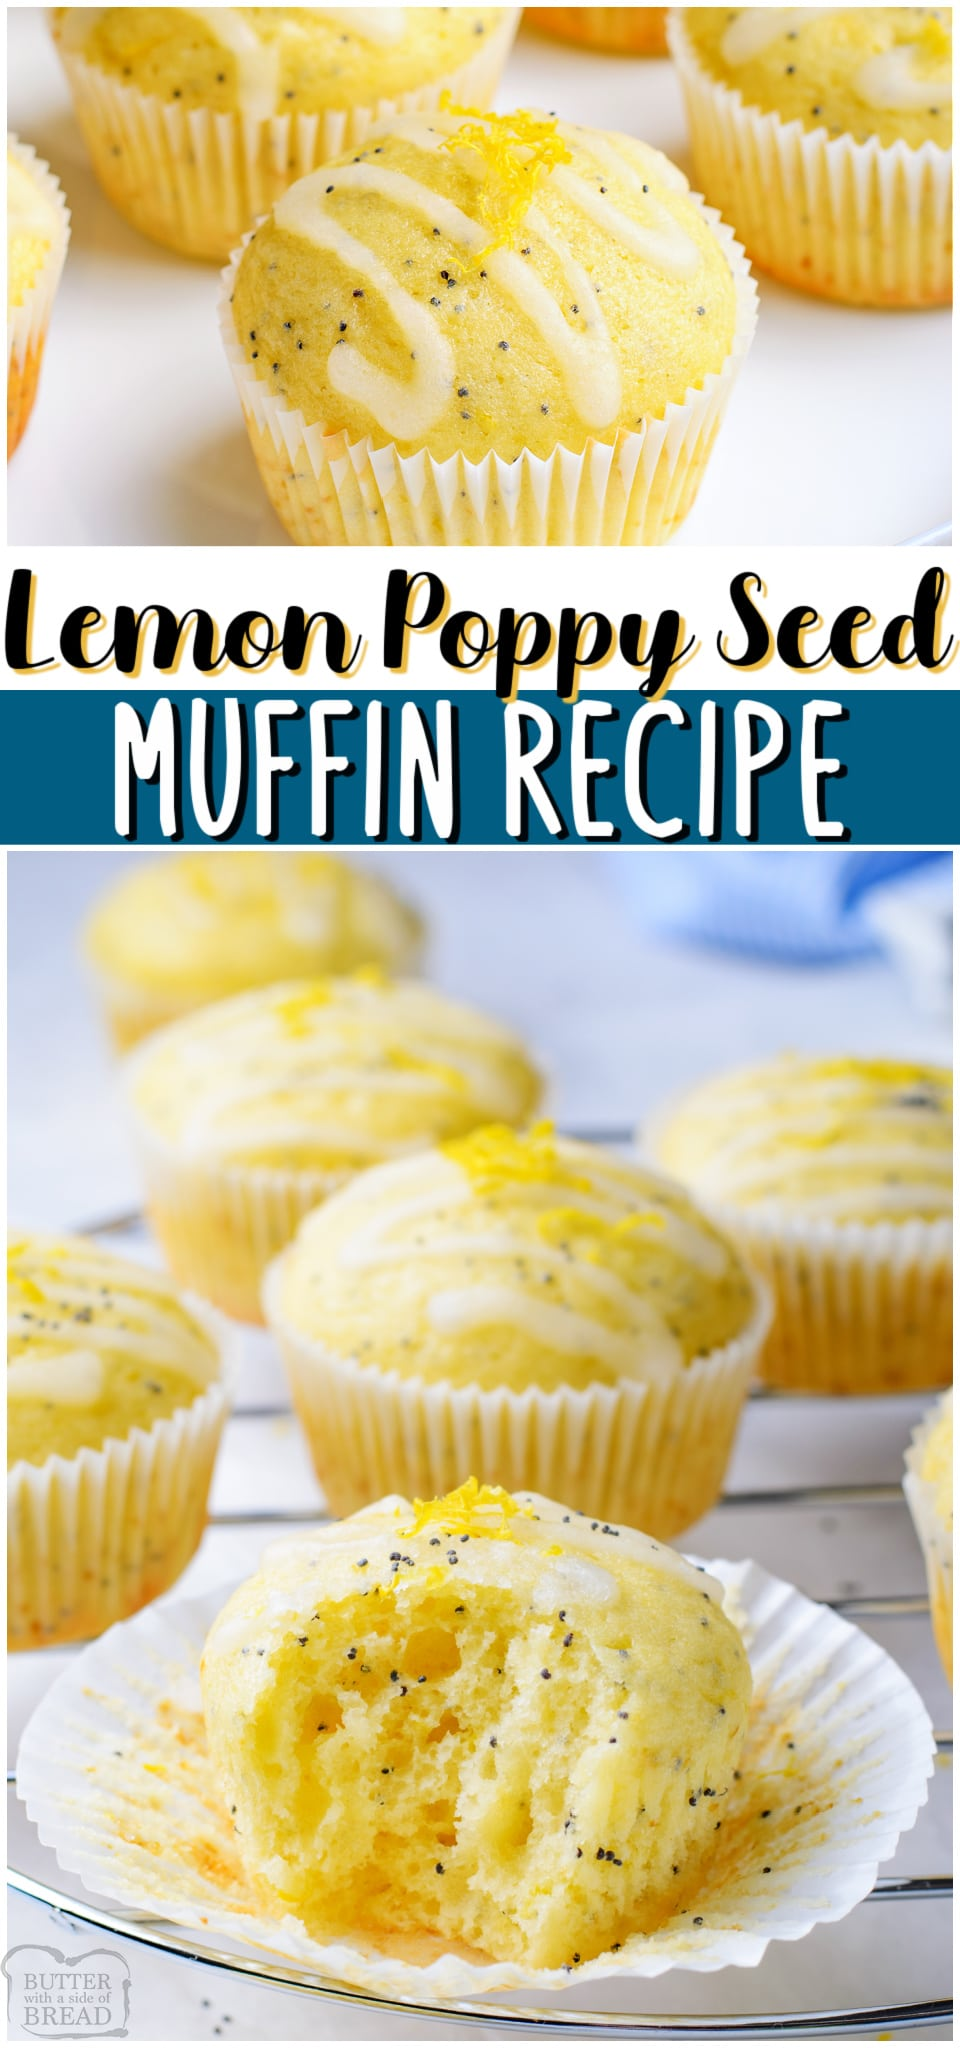 Lemon Poppy Seed Muffins made with traditional ingredients, plus fresh lemon, greek yogurt & poppy seeds! Tender lemon muffins with bright flavor & drizzled with a tangy sweet lemon glaze.